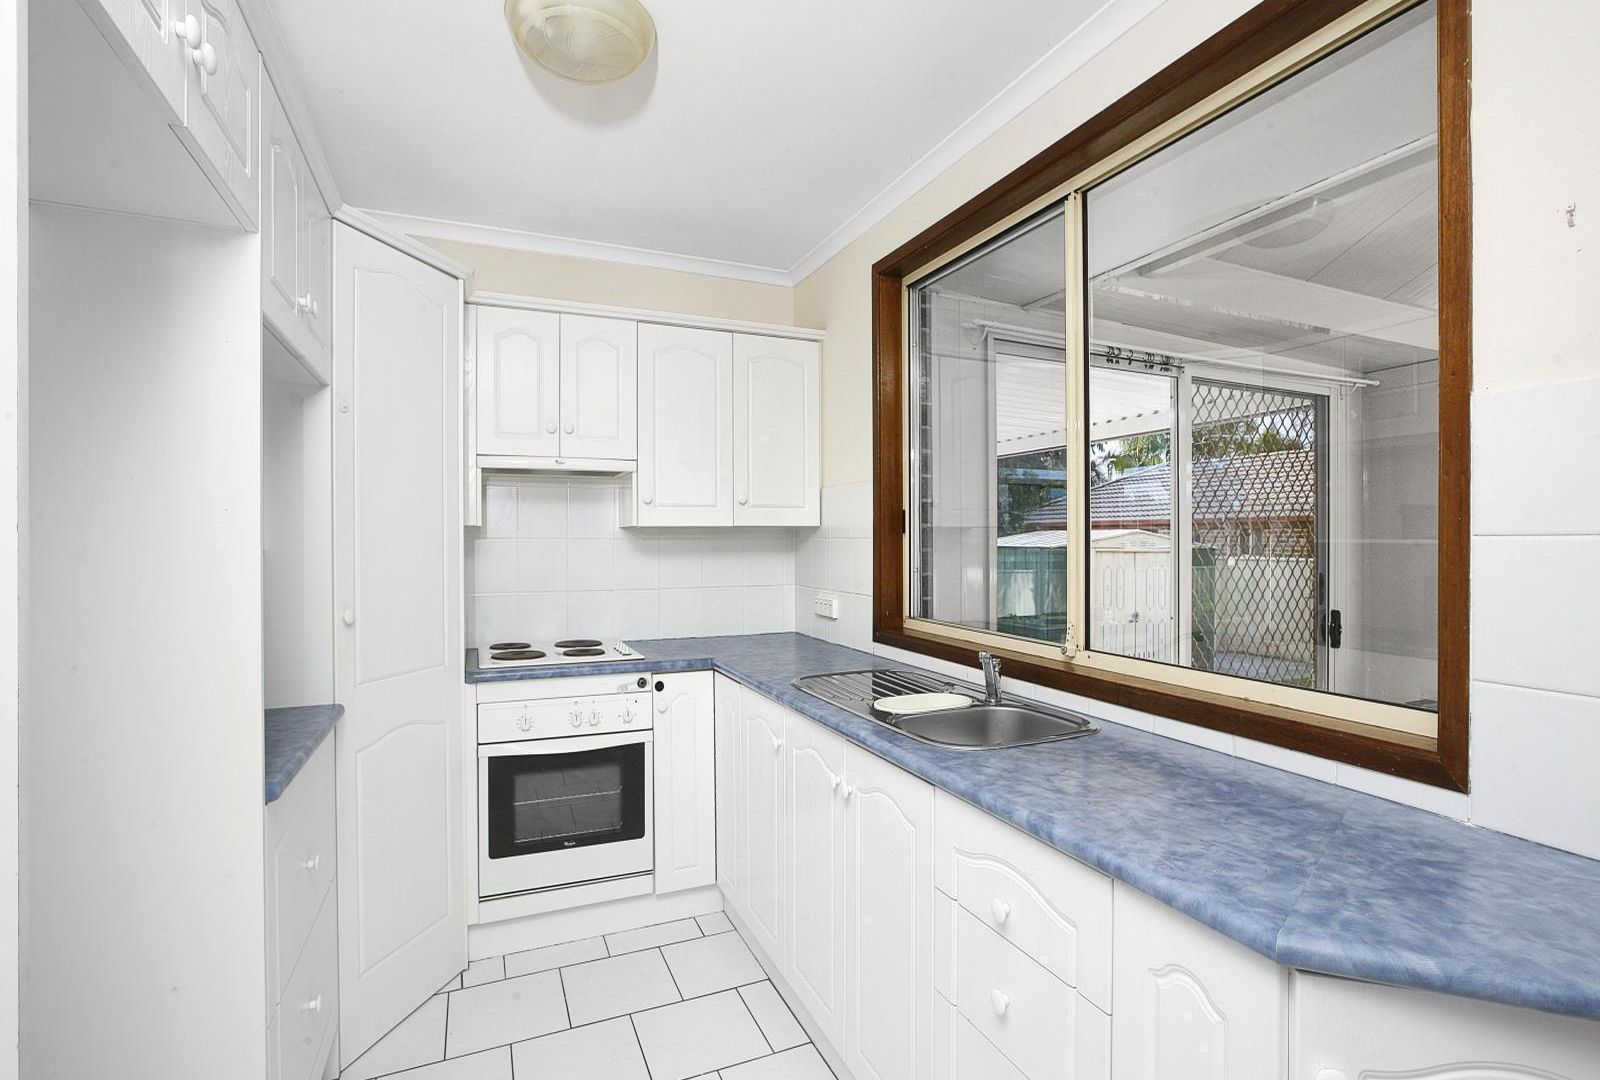 44 Paddy Miller Avenue, Currans Hill NSW 2567, Image 1